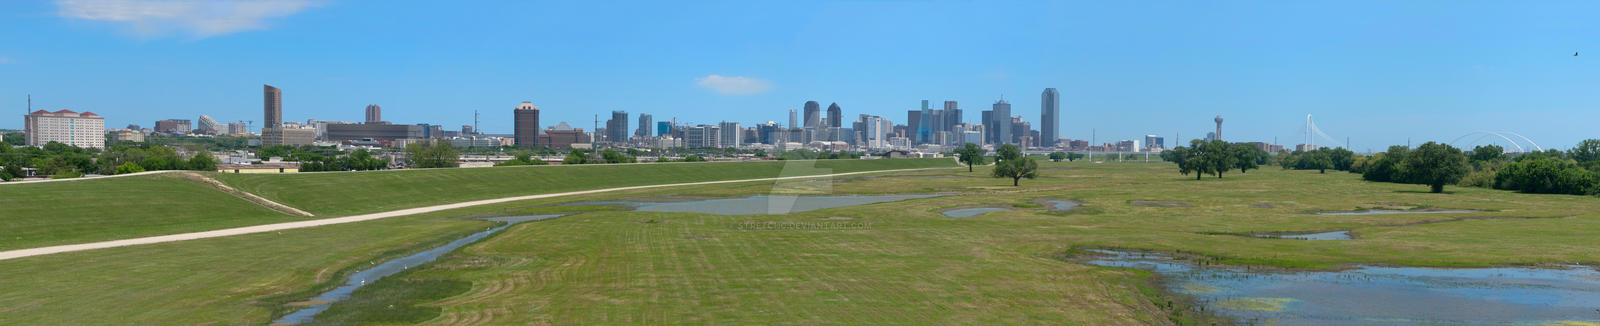 Dallas Skyline beyond Trinity River Park 01 by stretchc